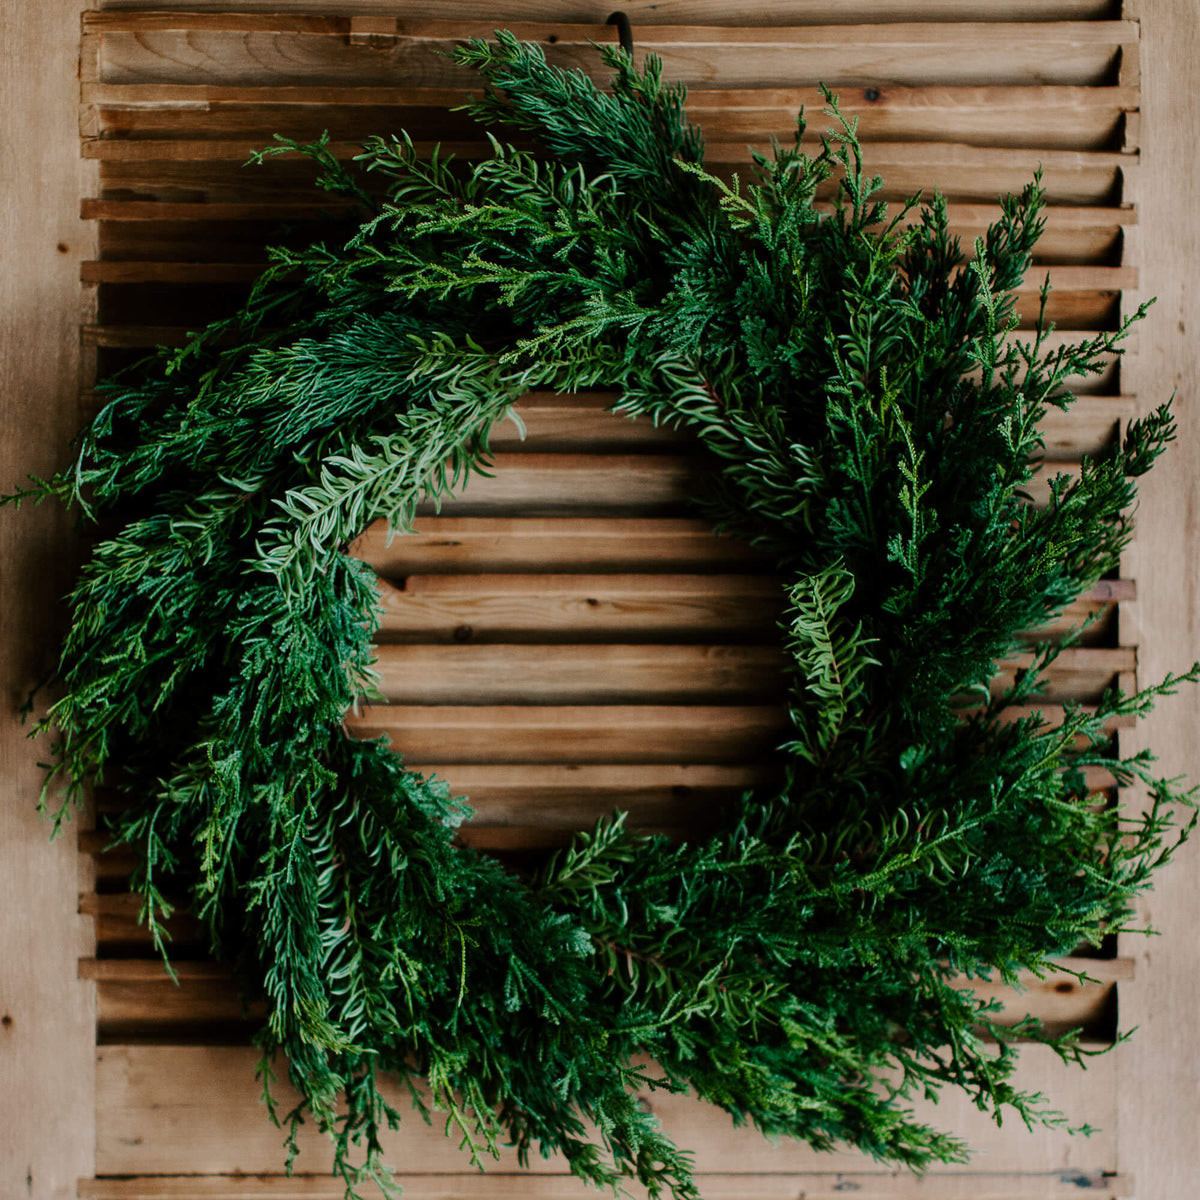 A natural-looking faux cedar wreath with wispy edges and realistic green branches make up this 28 inch diameter wreath for holiday decorating